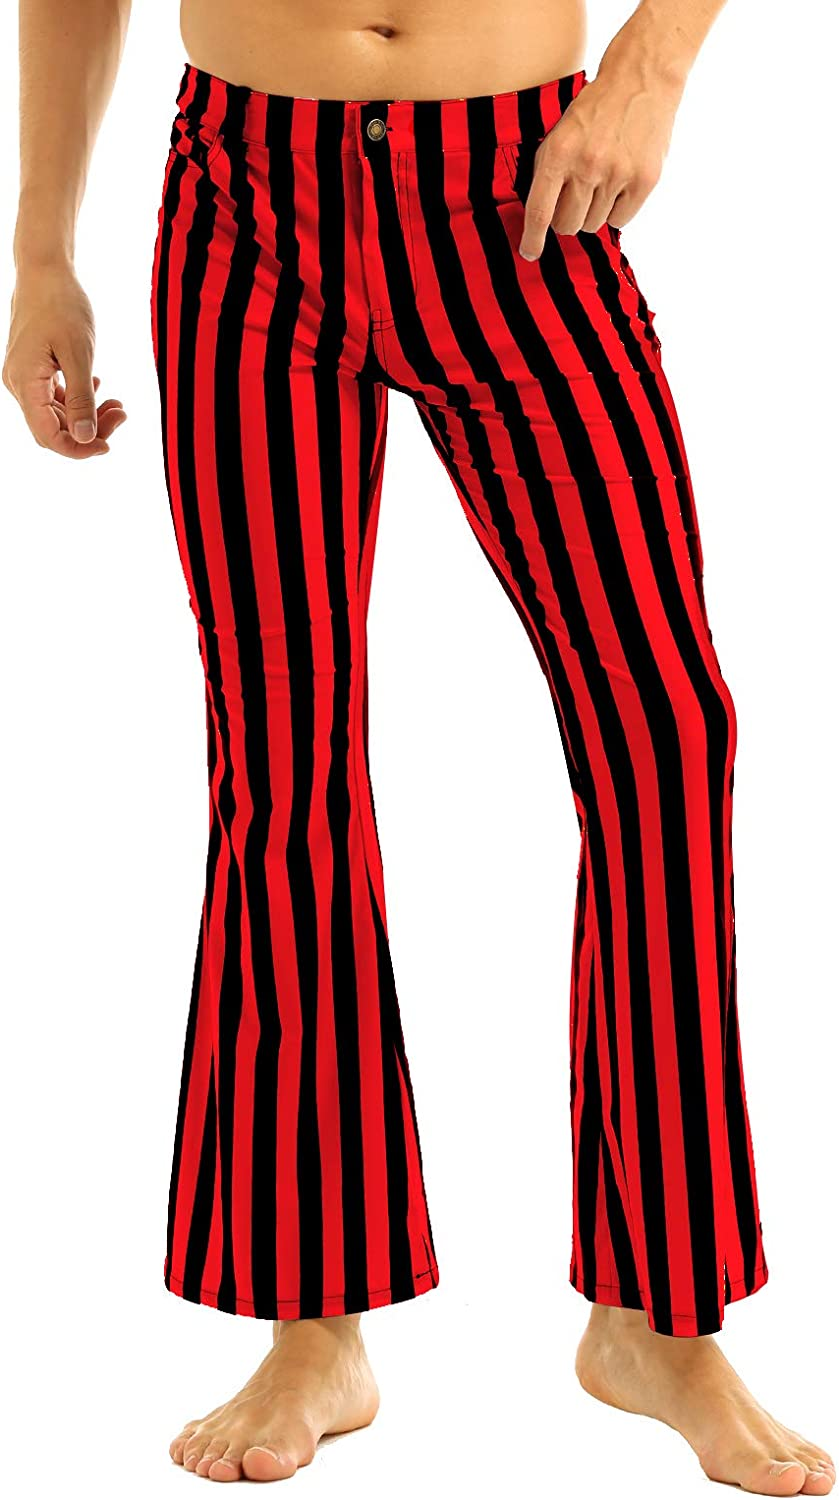 Men/'s Adult Mid Waist Striped Fancy Dress Flares Pants Outfit 60s 70s Trousers